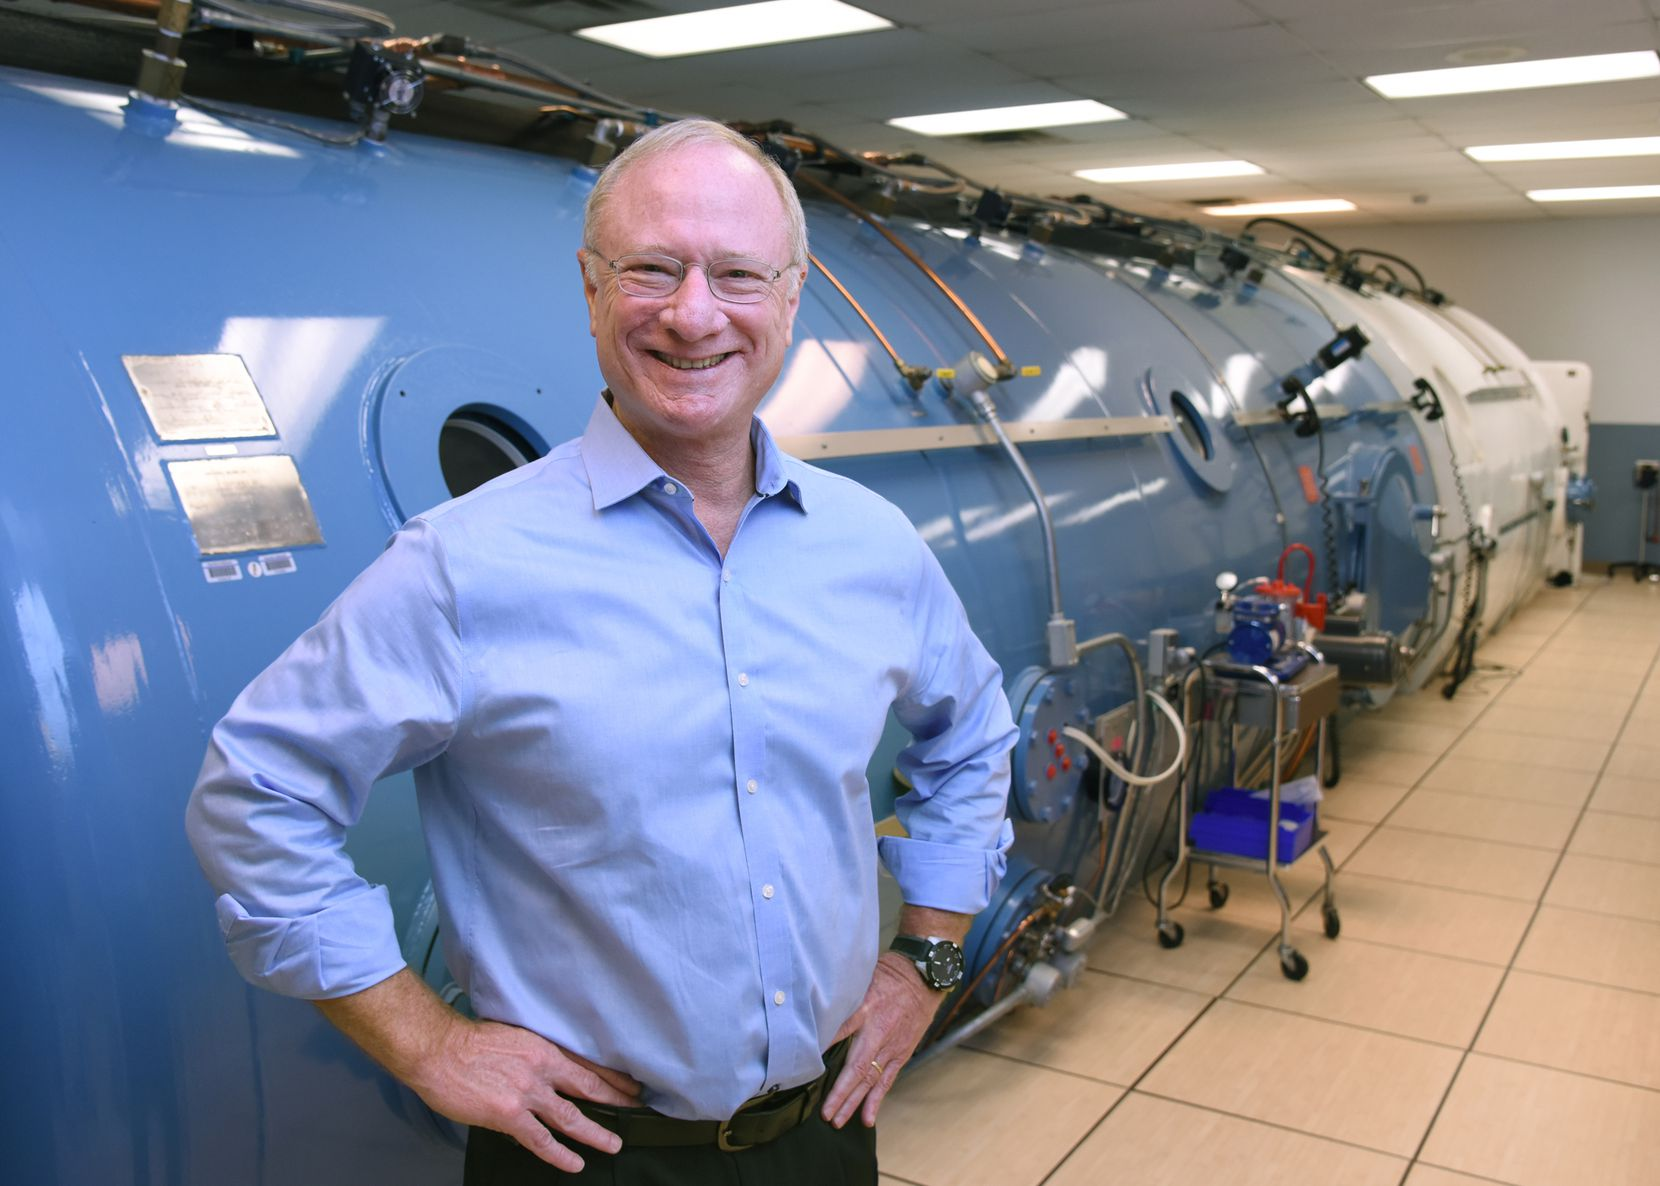 Dr. Benjamin Levine, director of the Institute for Exercise and Environmental Medicine, stands in front of his laboratory's hyper/hypobaric environmental chamber, which is used to simulate high altitude, deep diving, and space-like conditions in his studies of human performance